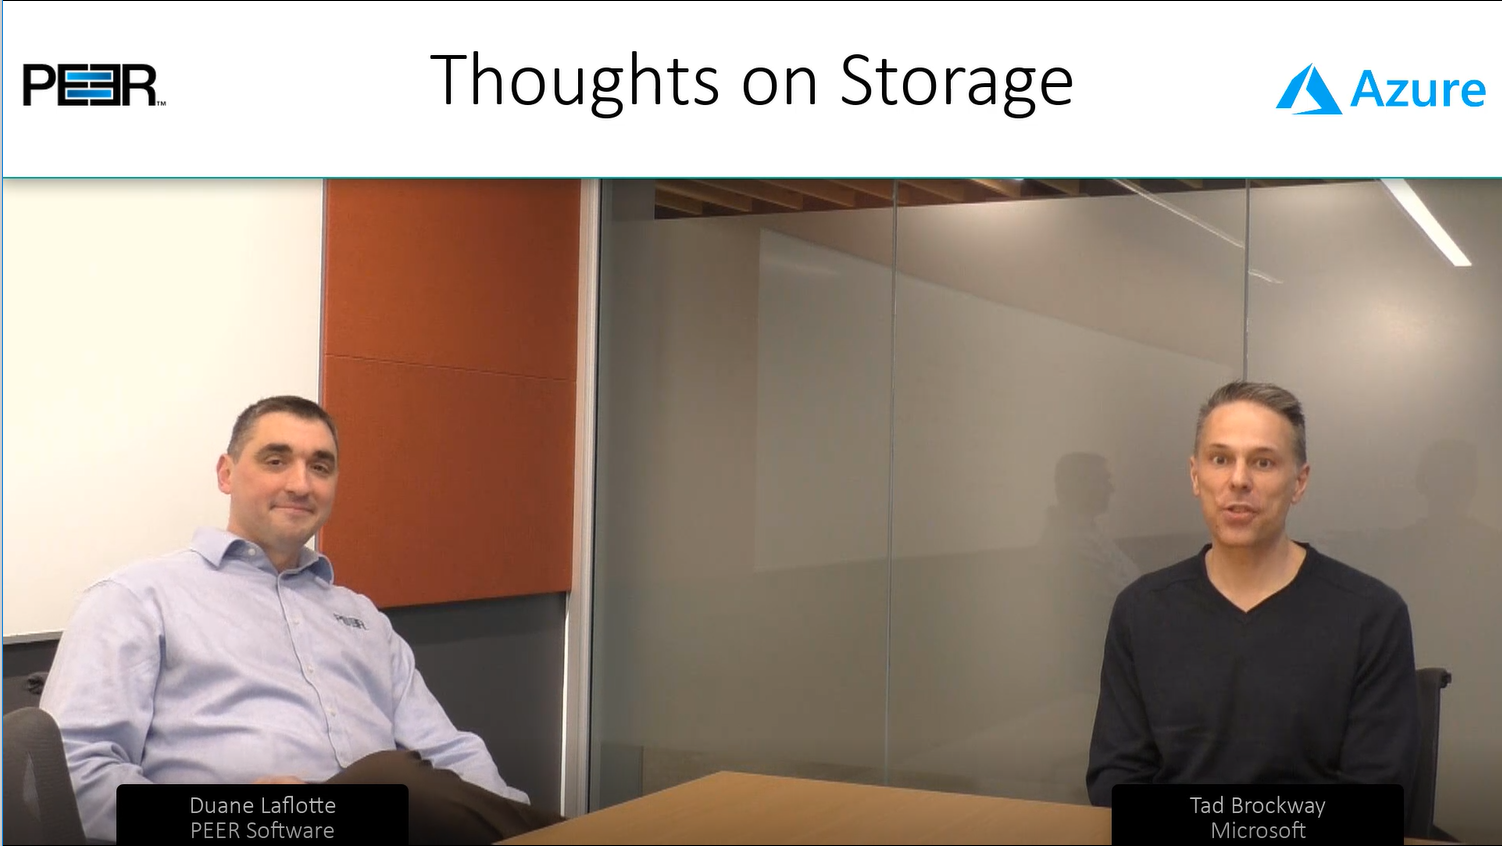 Thoughts on Storage with Peer Software